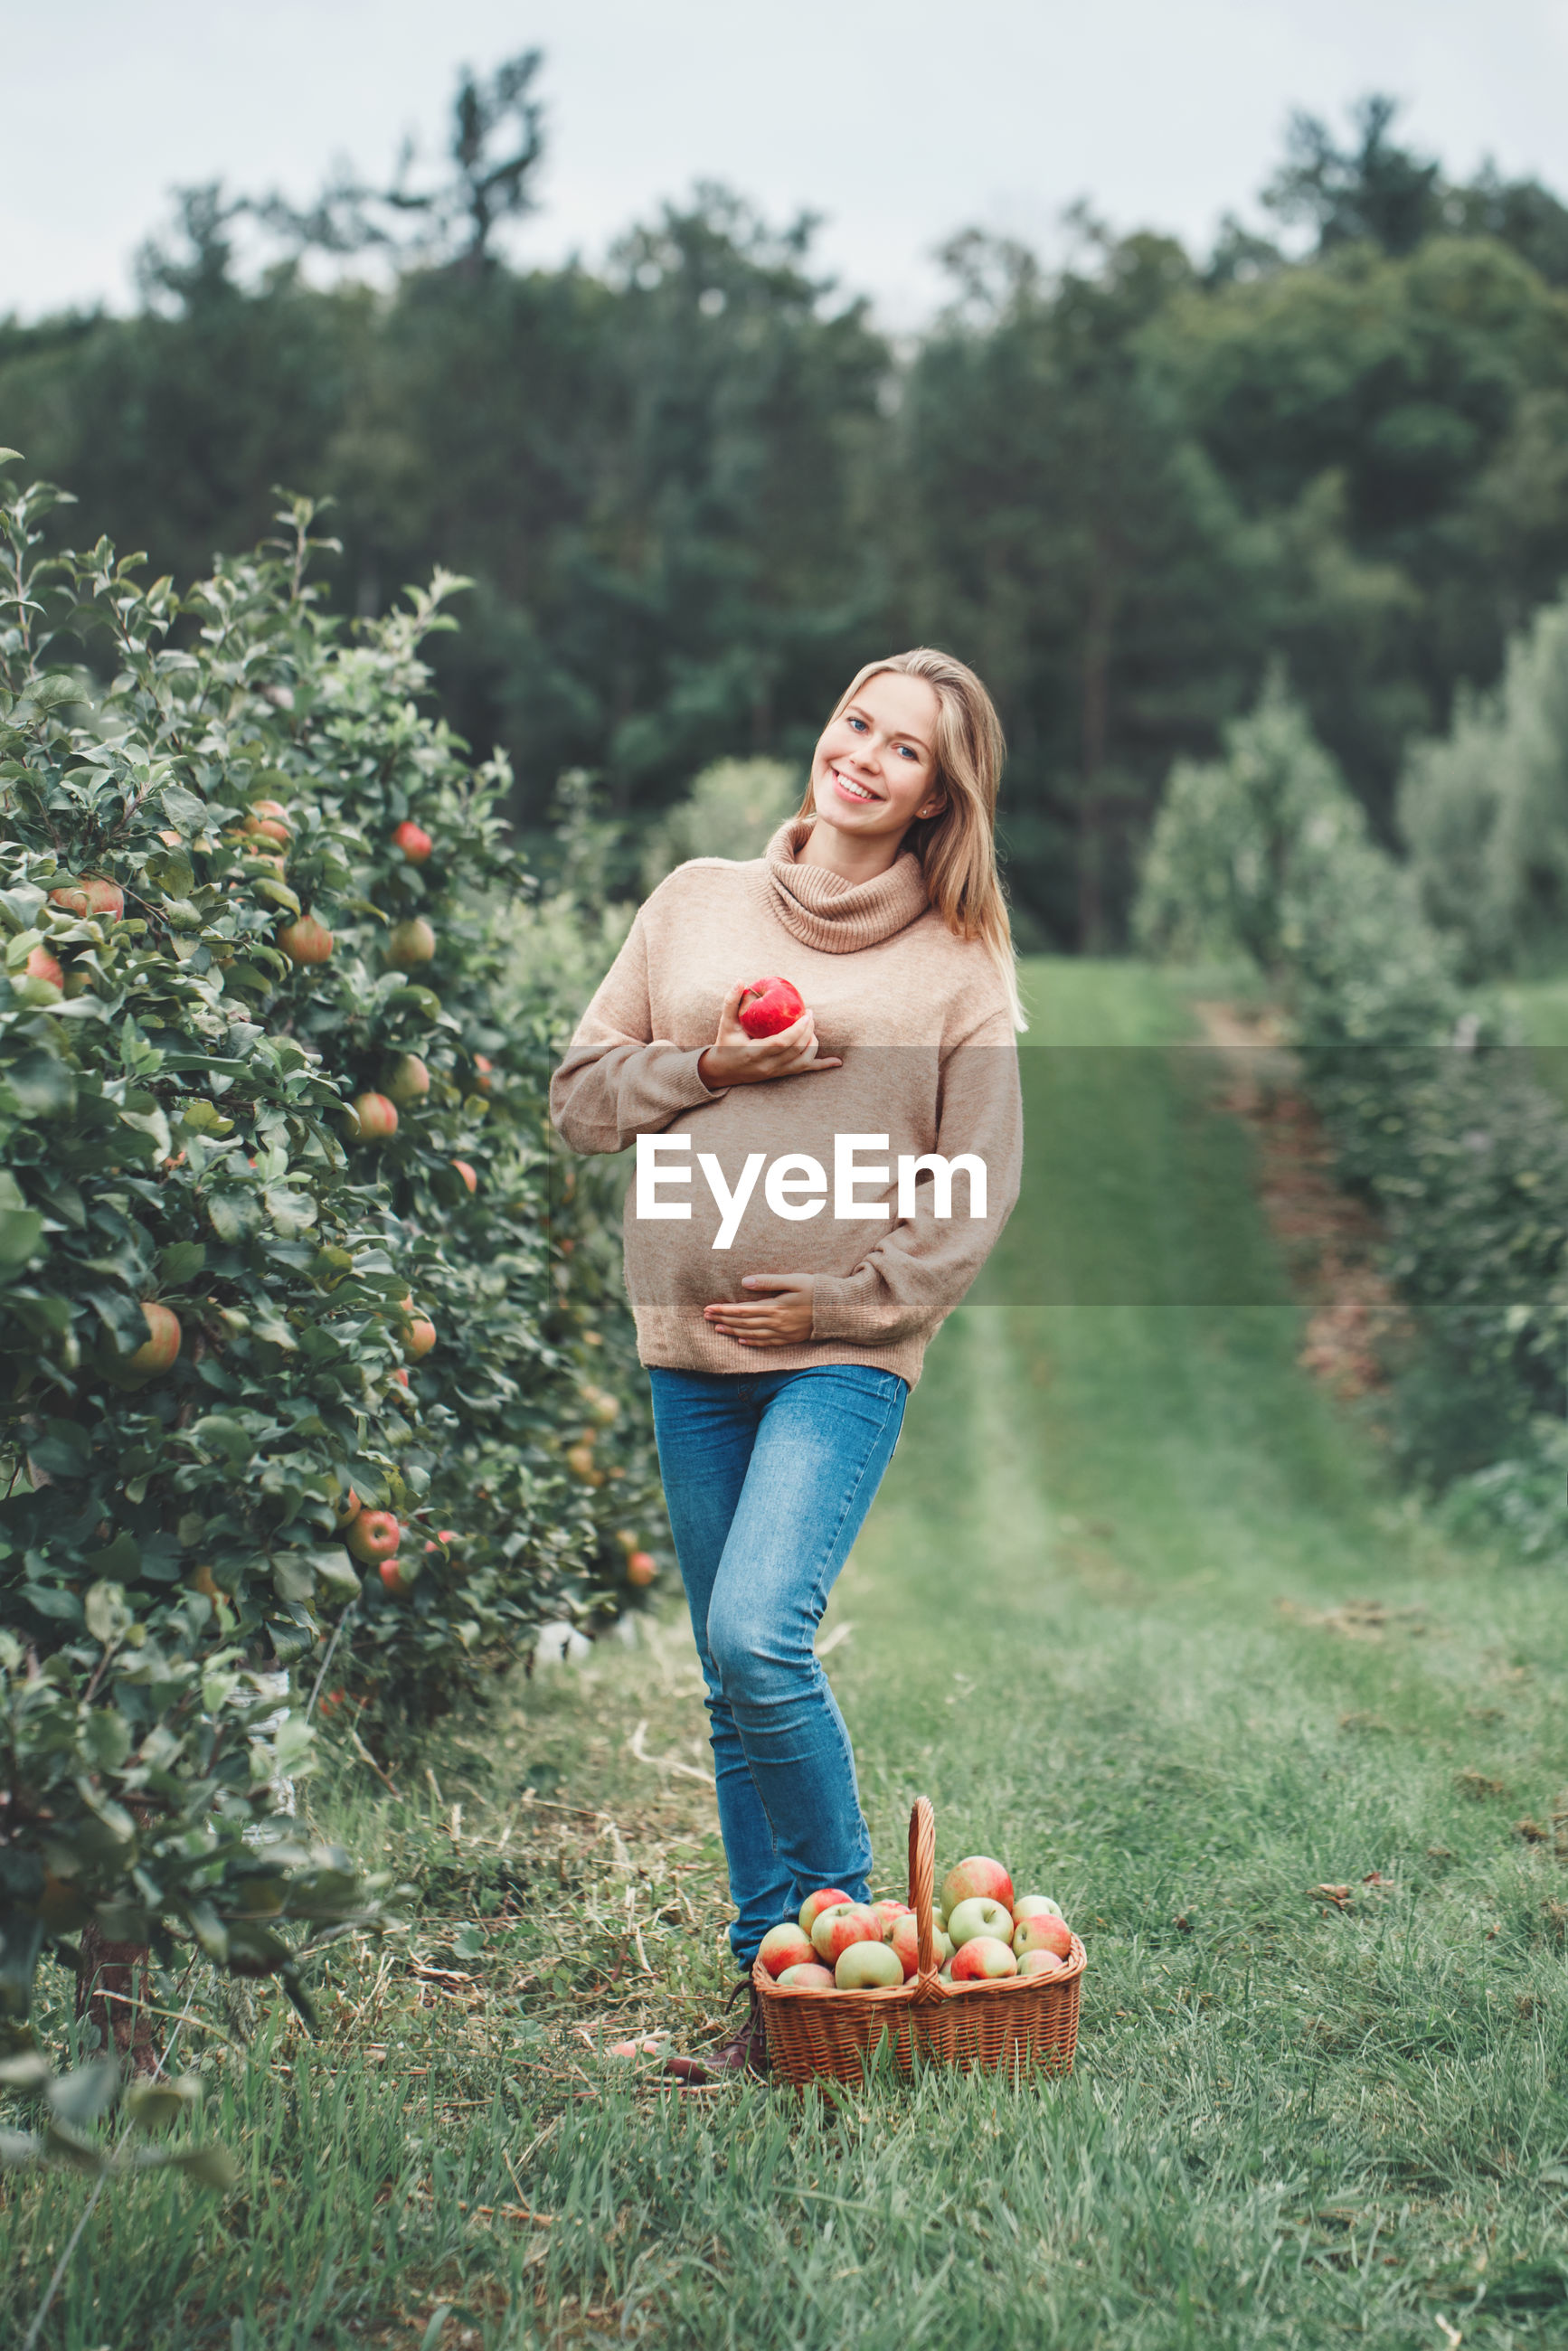 Portrait of smiling pregnant woman holding apple while standing by basket and trees